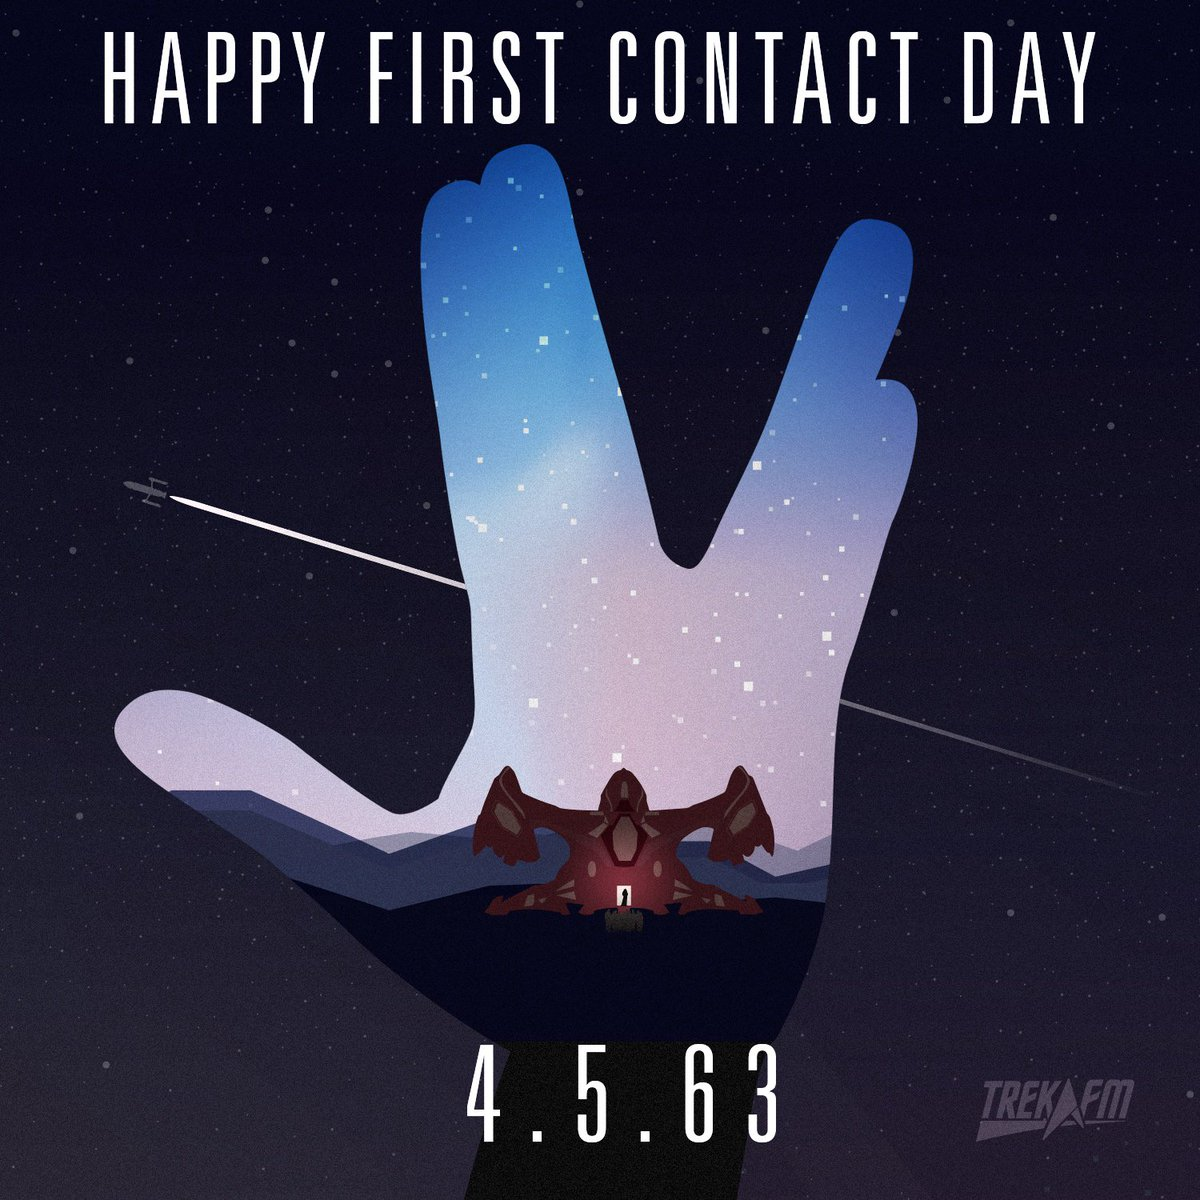 Only 47 years to go. Happy #FirstContactDay from all of us at Trek.fm! https://t.co/t5M7evvAlA